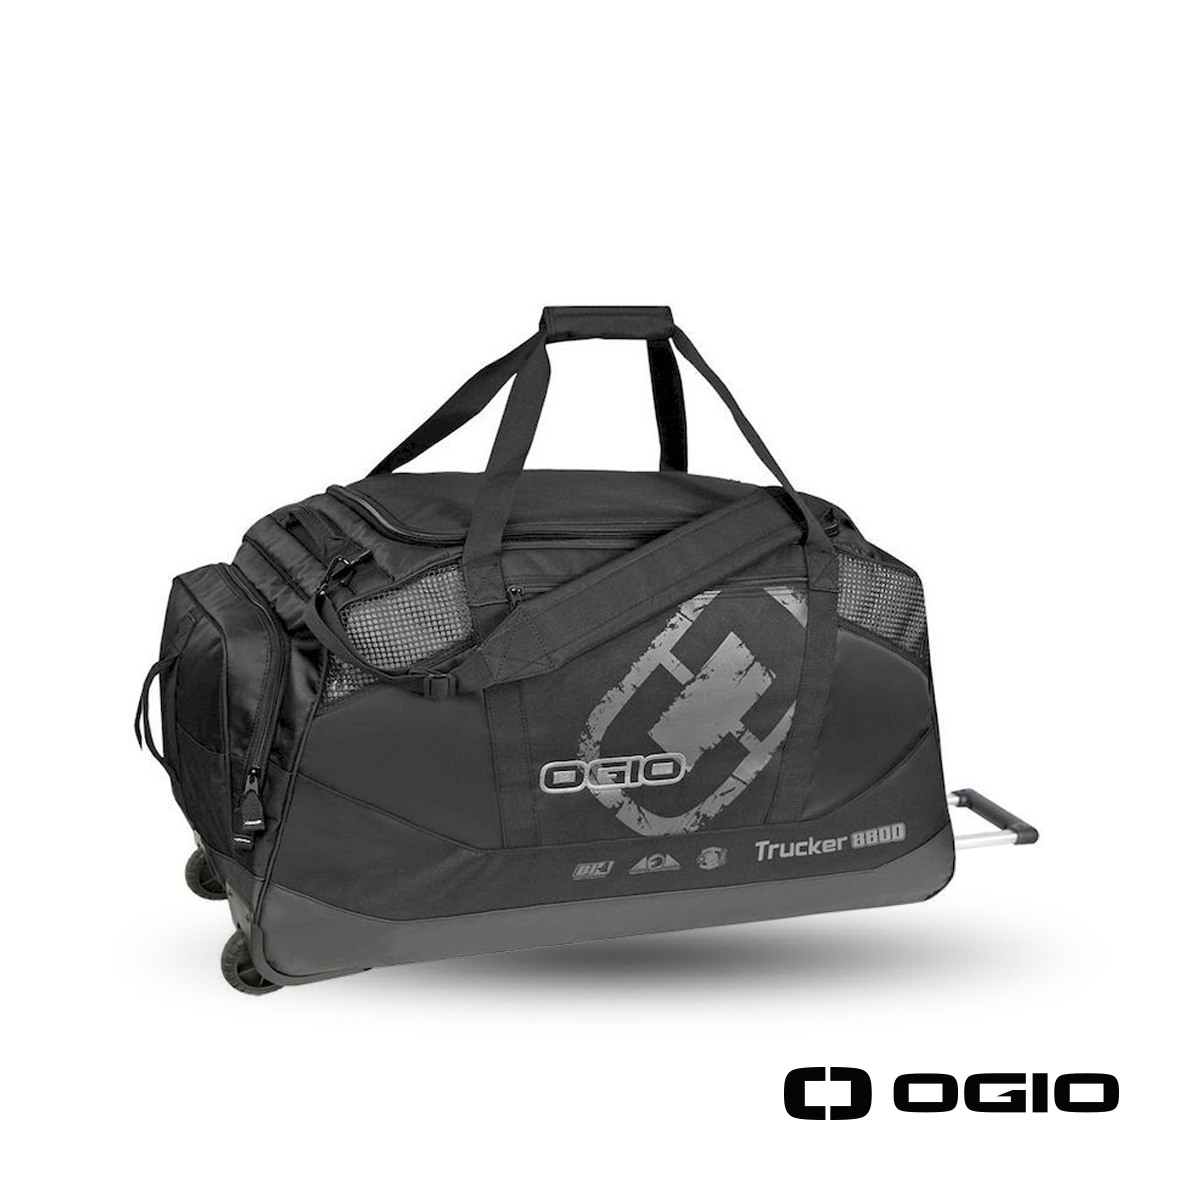 Ogio Bolso Trucker 8800 Gear Bag